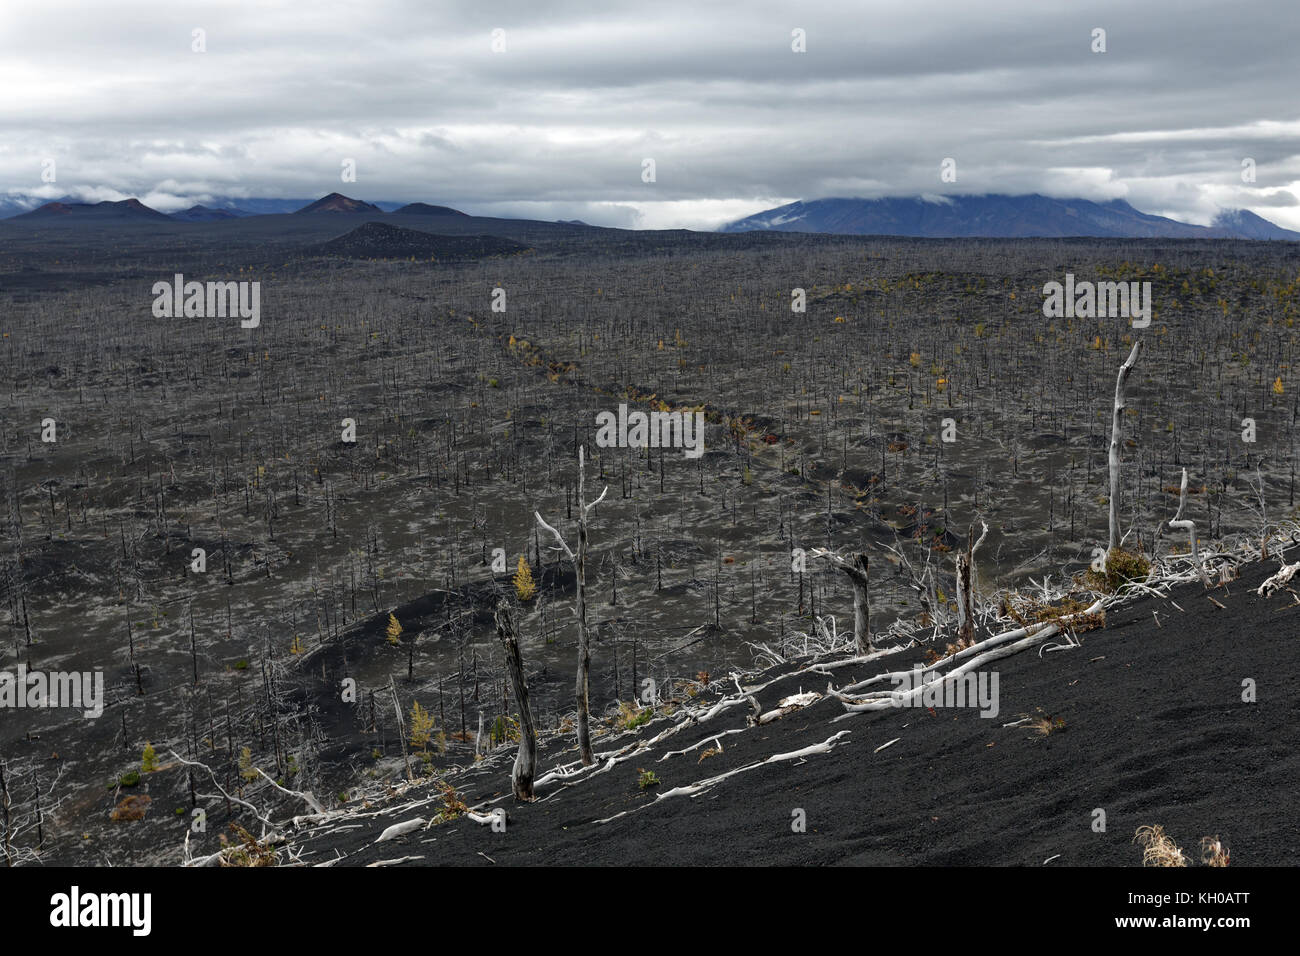 Volcanic landscape: Dead Forest (Dead Wood) on Kamchatka Peninsula - consequence of natural disaster - eruptions - Stock Image